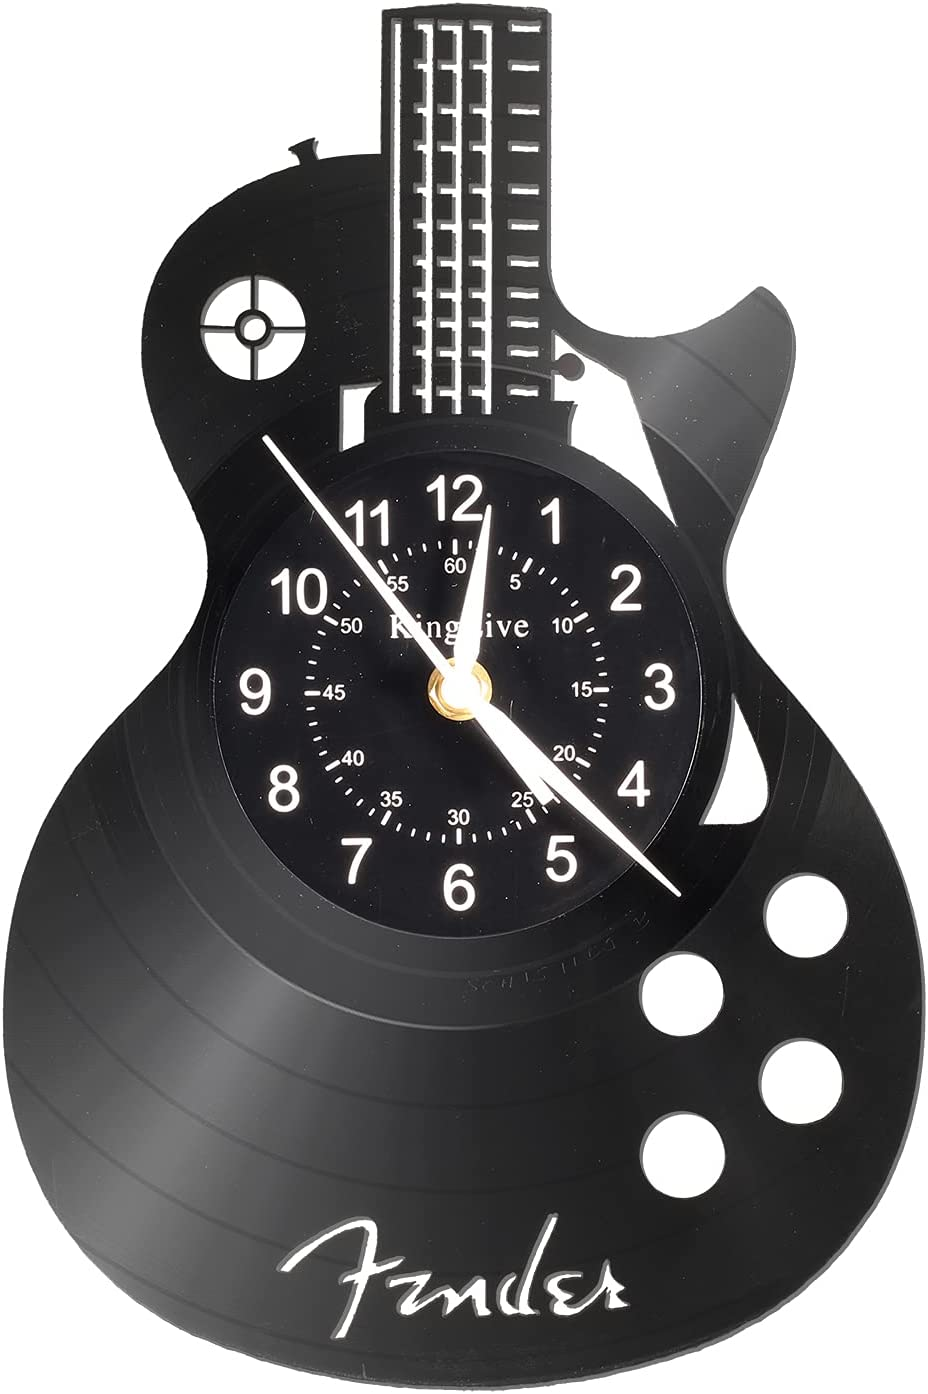 """Guitar Vinyl Wall Clock Gifts for Holiday ,12""""Black Music Wall Clock Instrument Art Unique Gifts for Men Women for Birthday Wall Decor"""